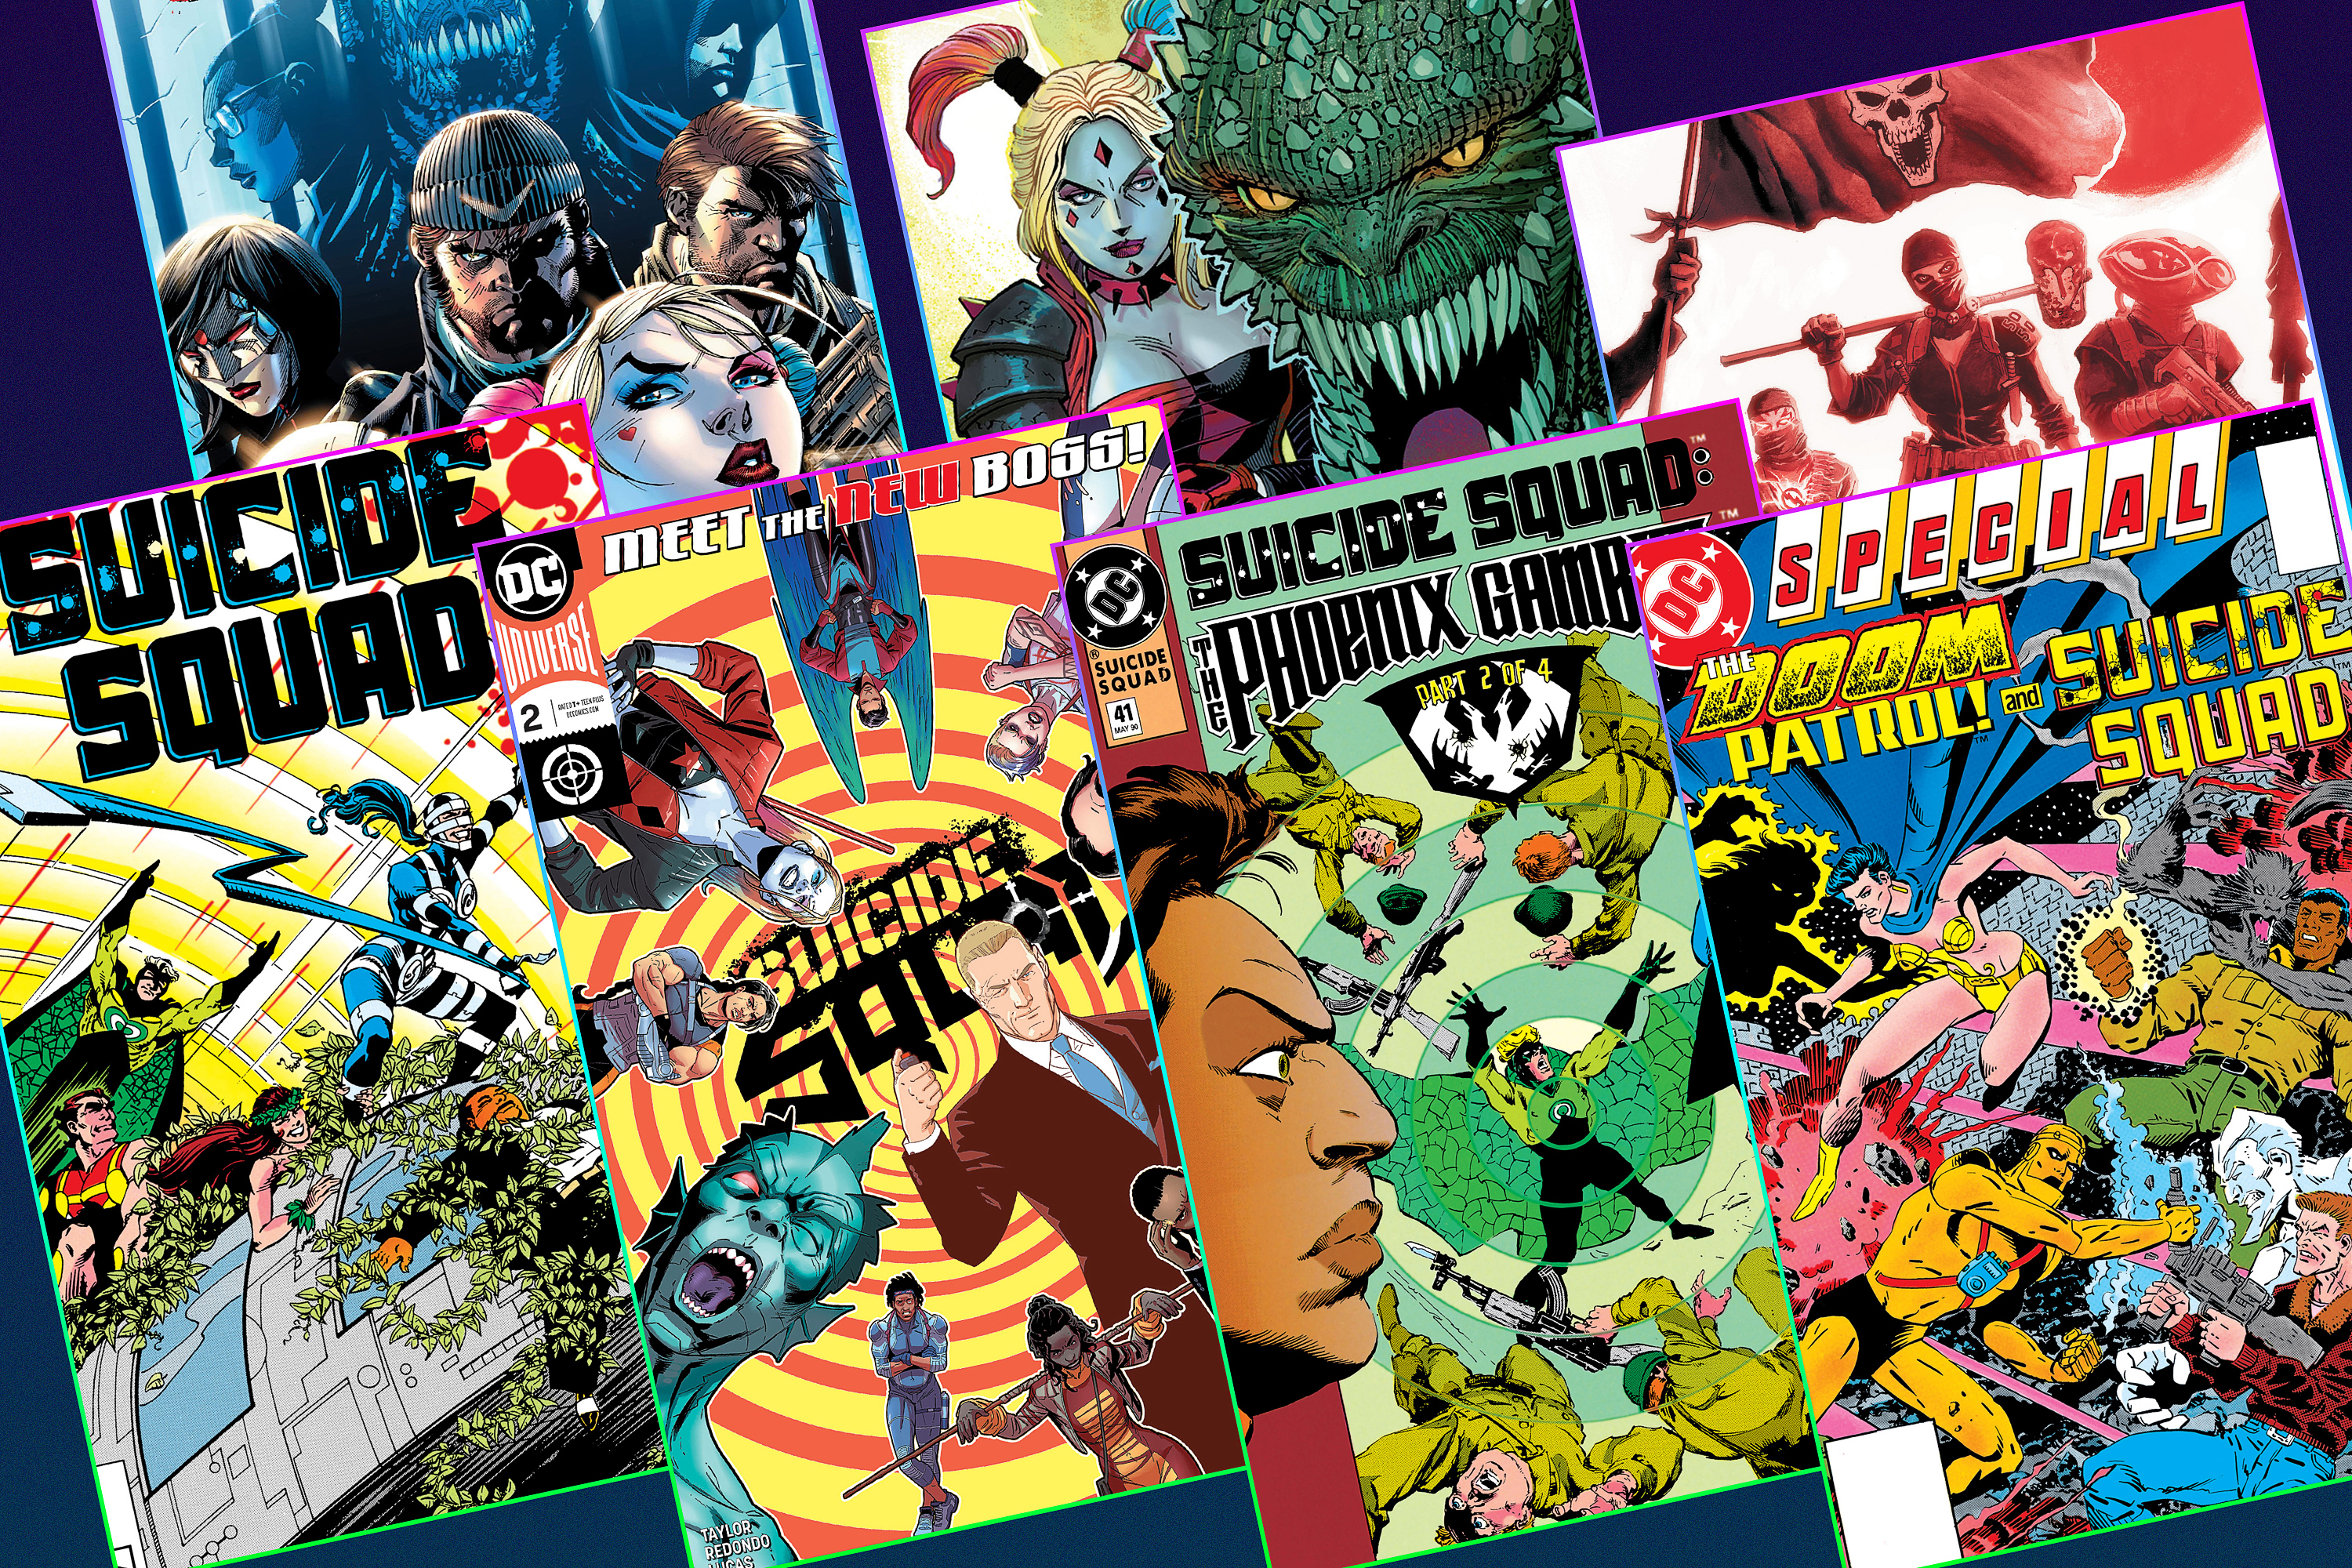 Graphic layout of seven different comic book covers featuring Suicide Squad